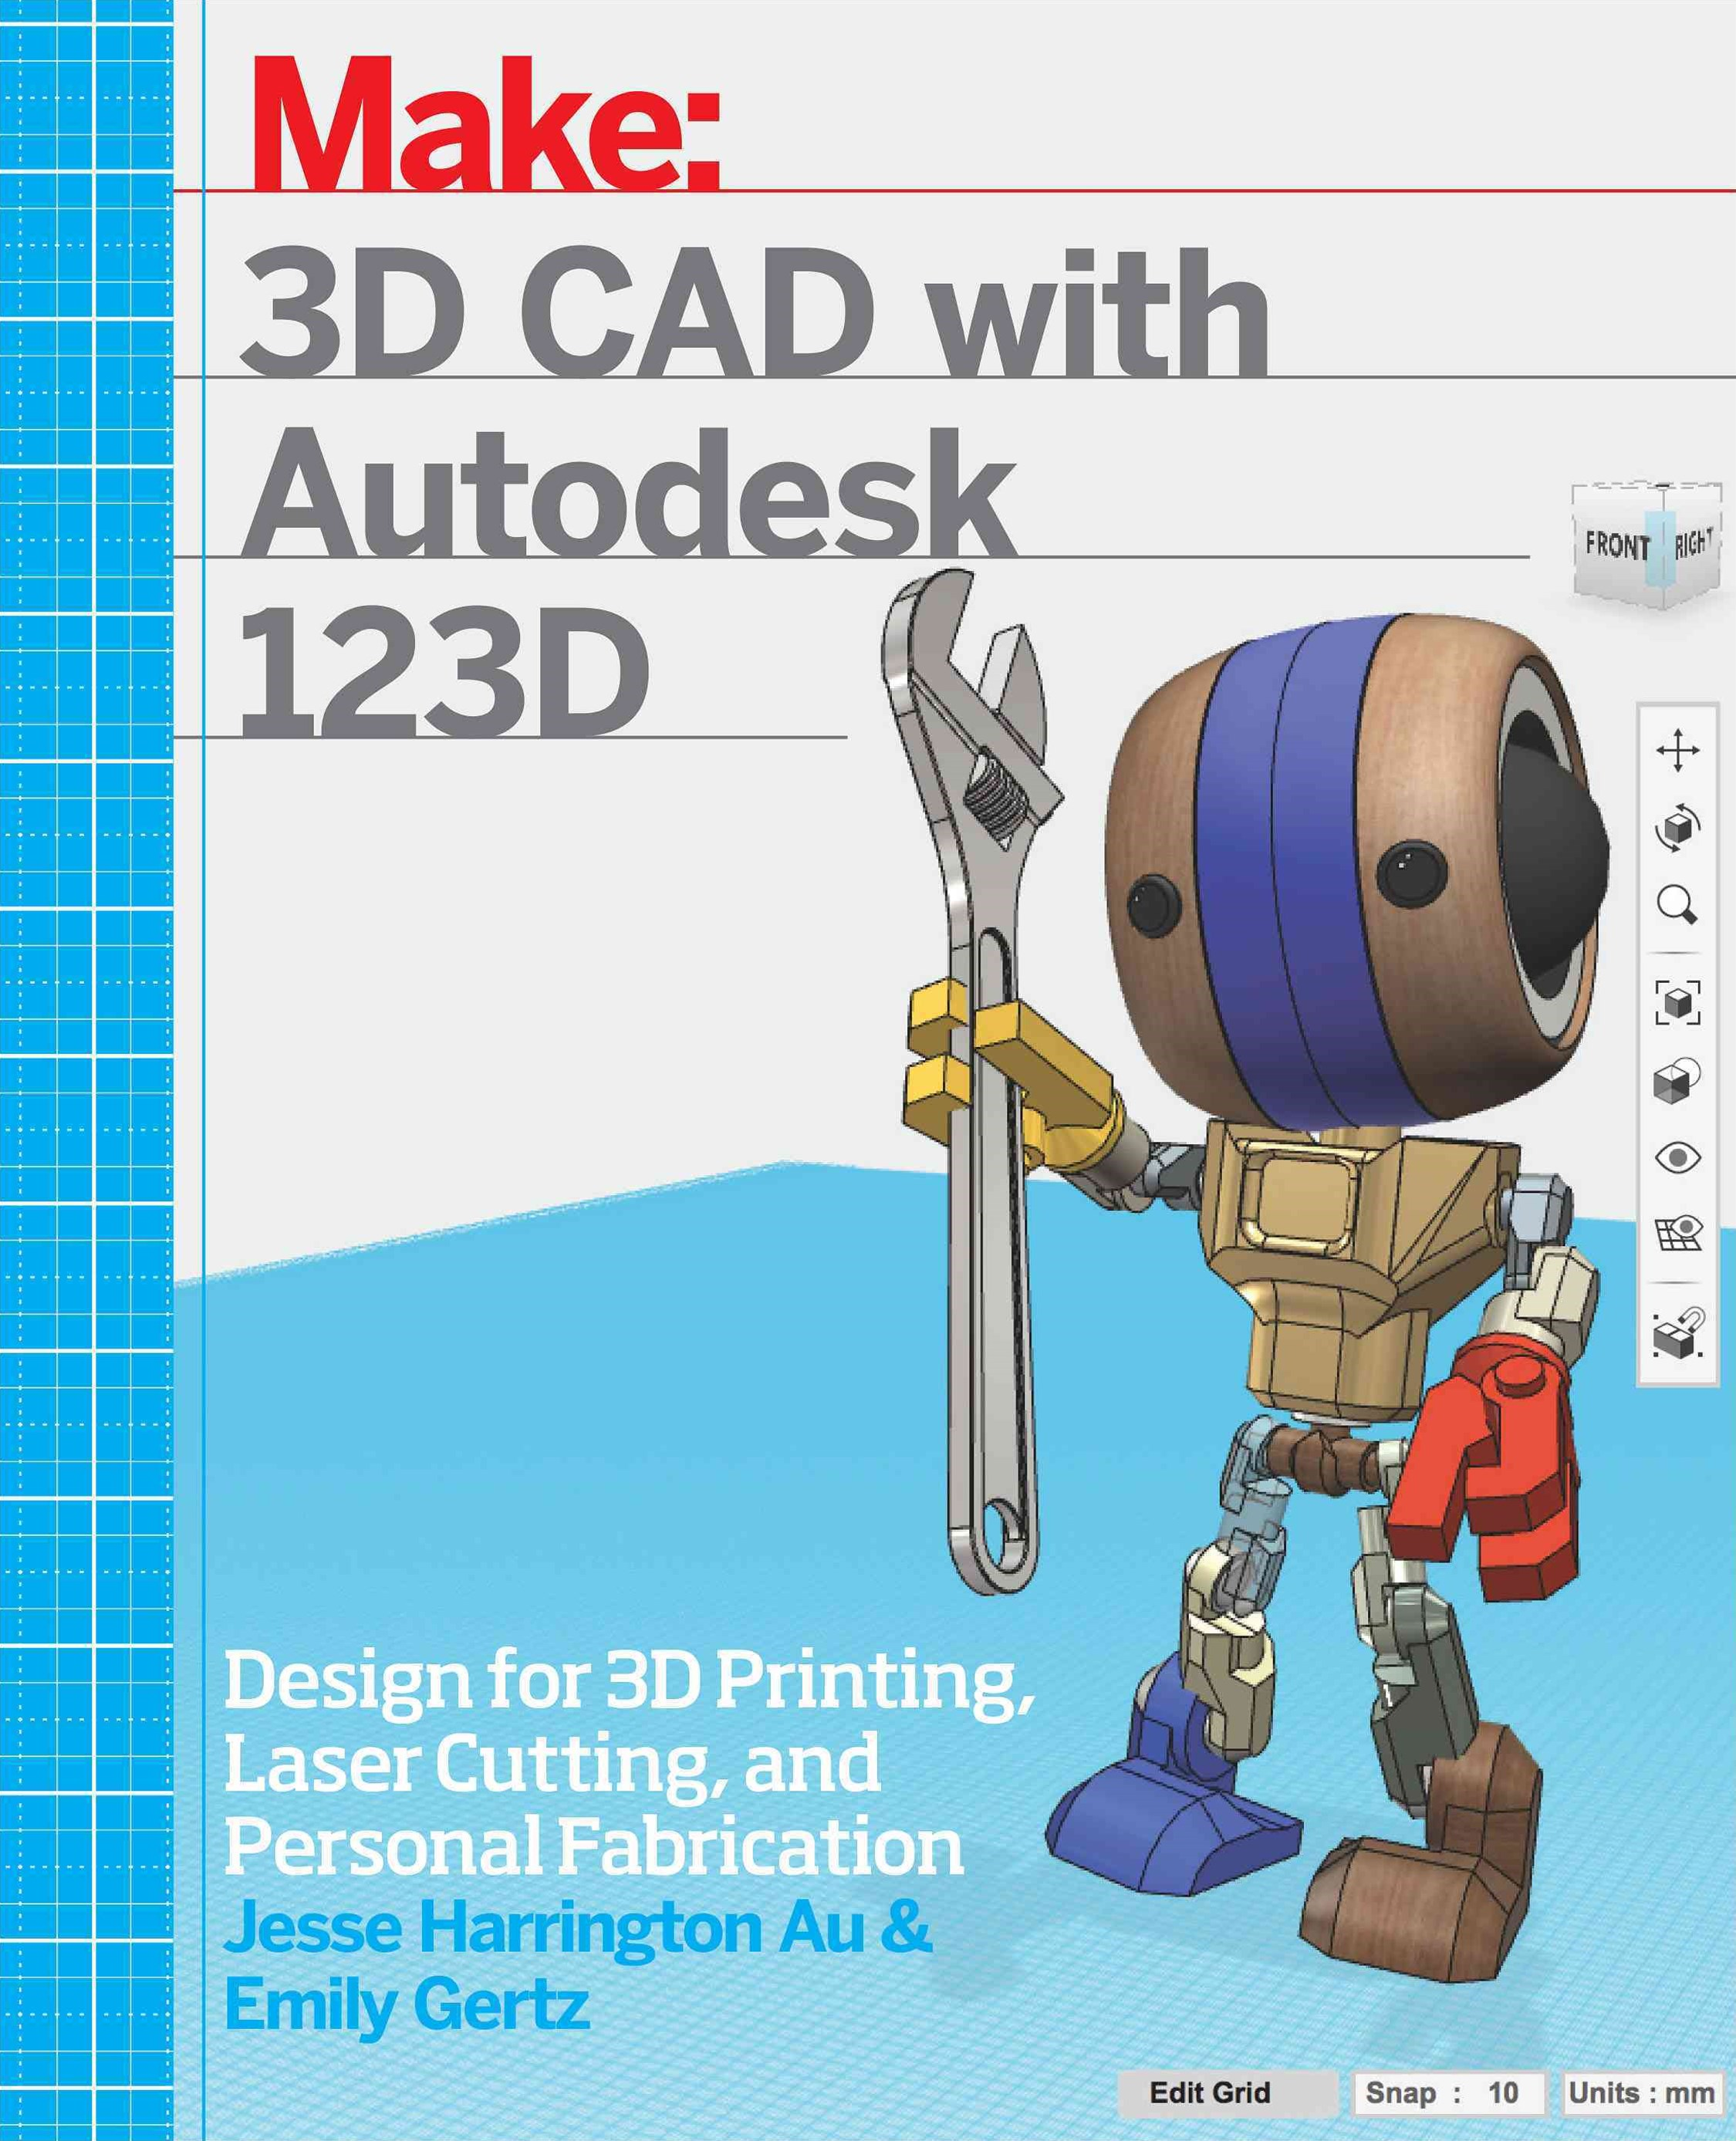 3D CAD with Autodesk 123D